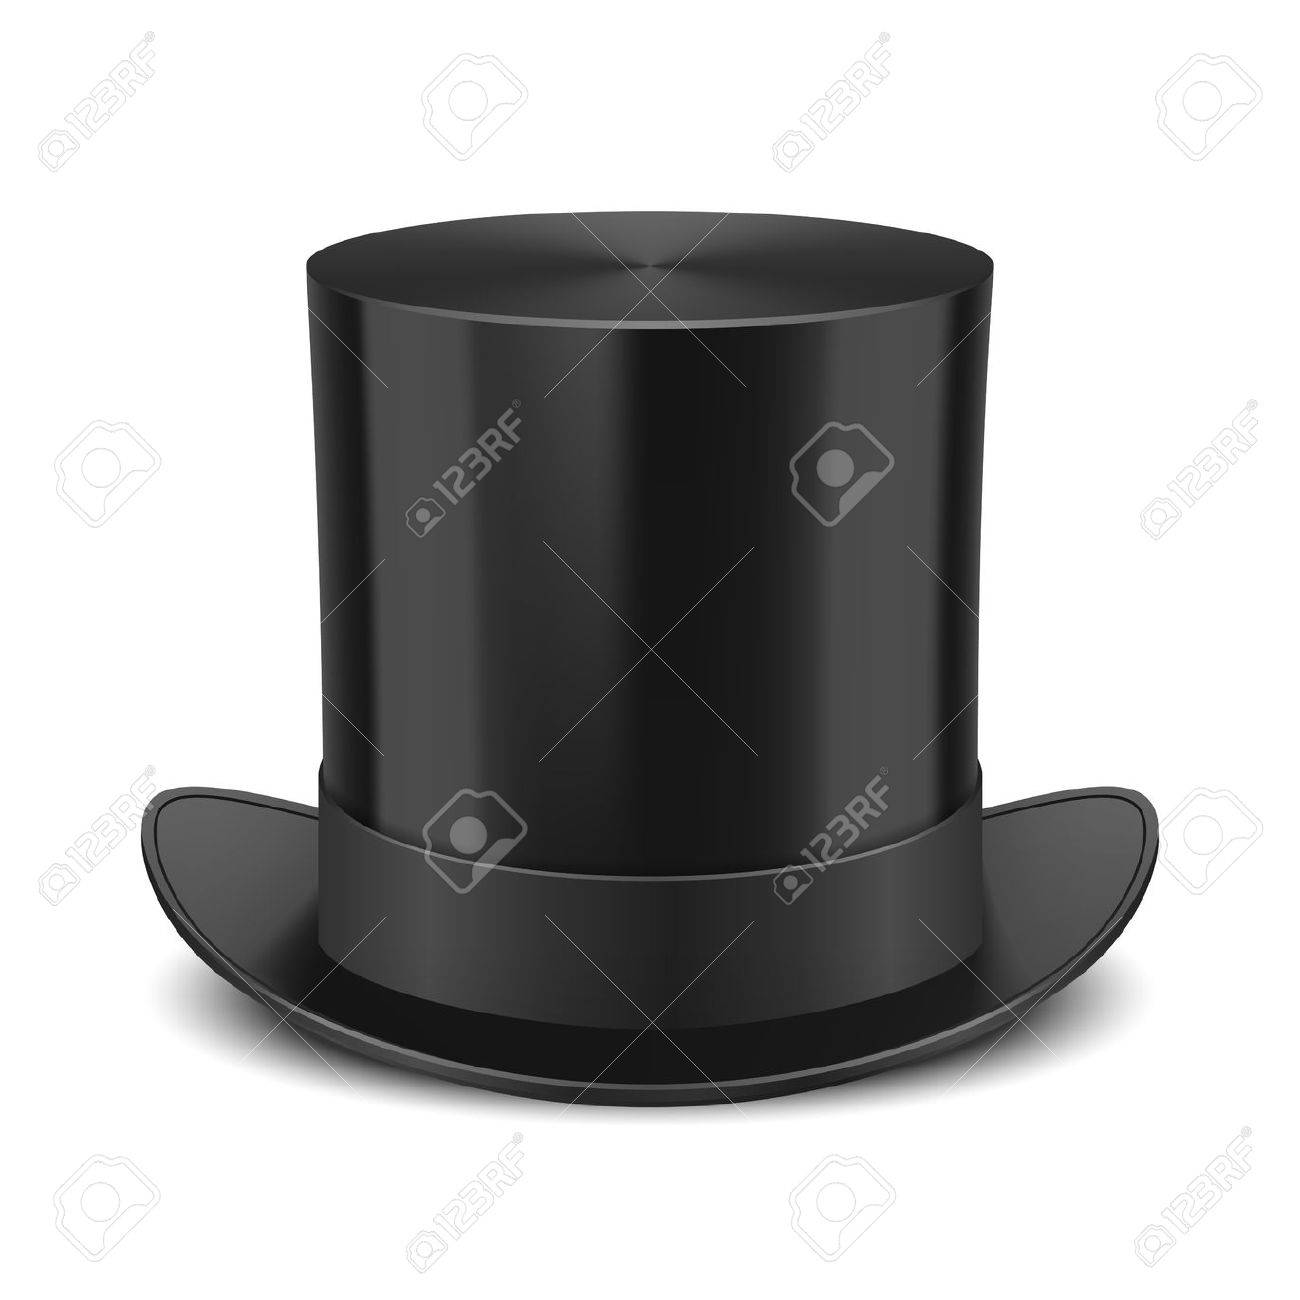 3f036e39a Black Top Hat illustration isolated on white background